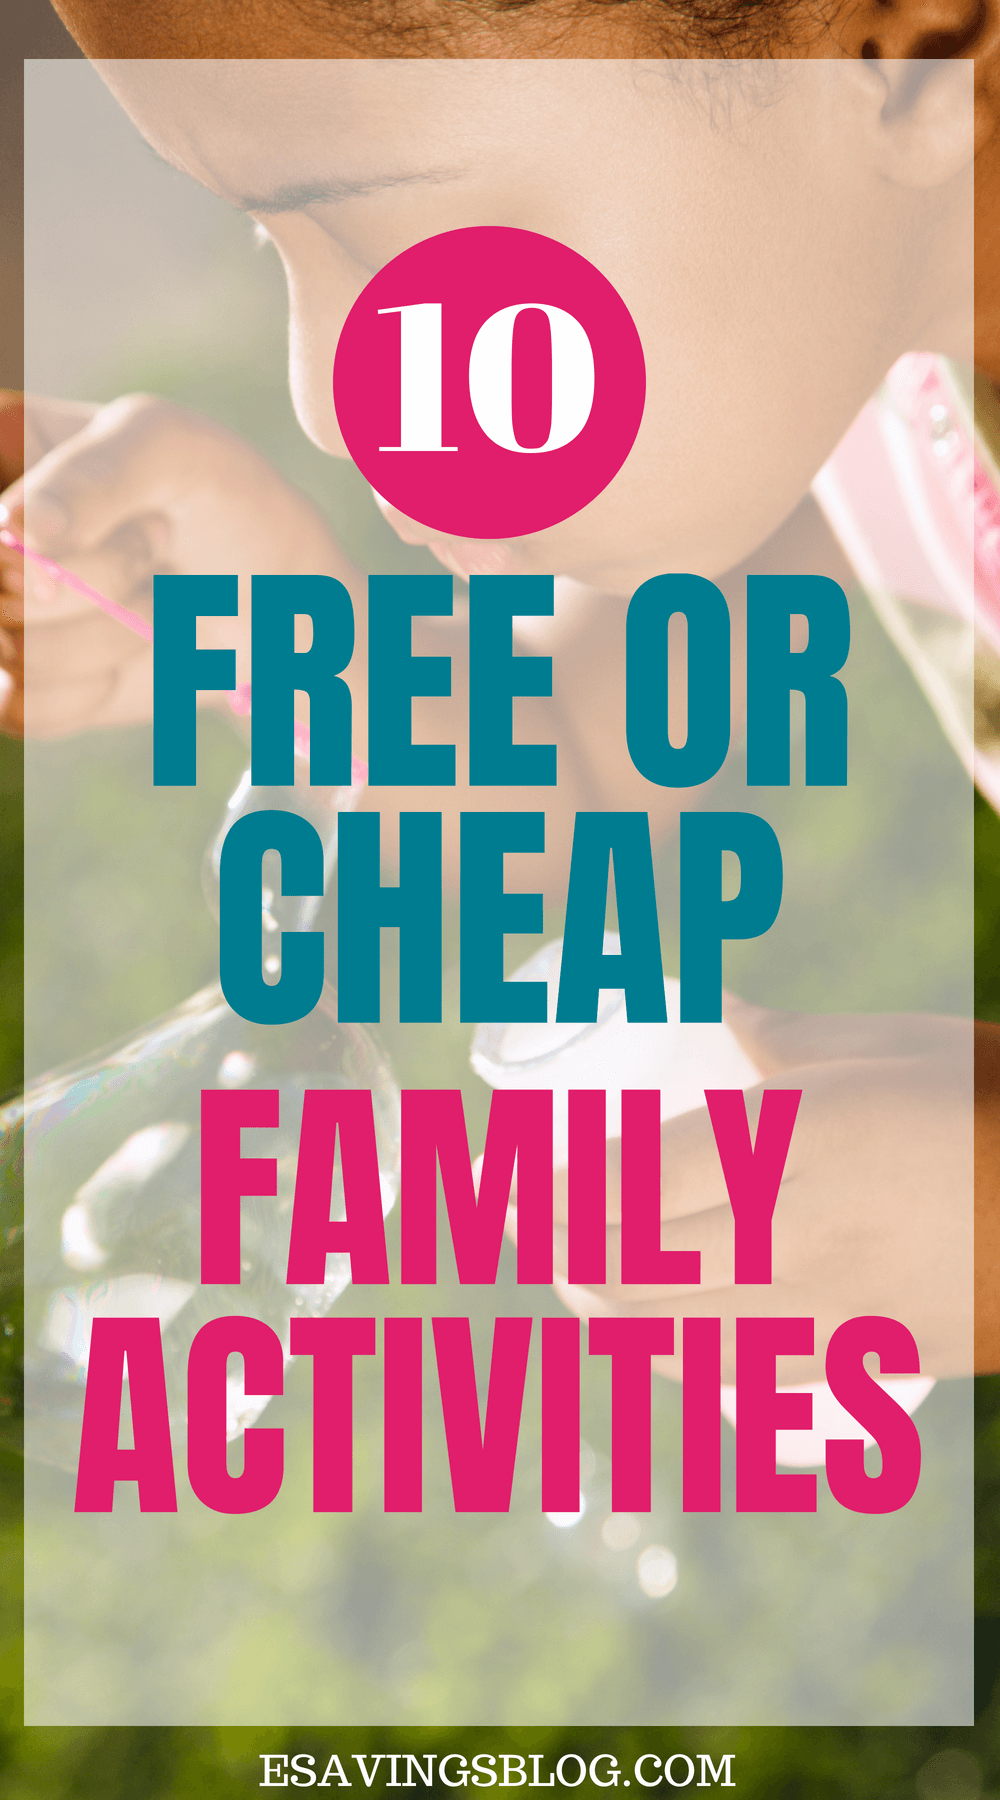 Free or cheap family activities!